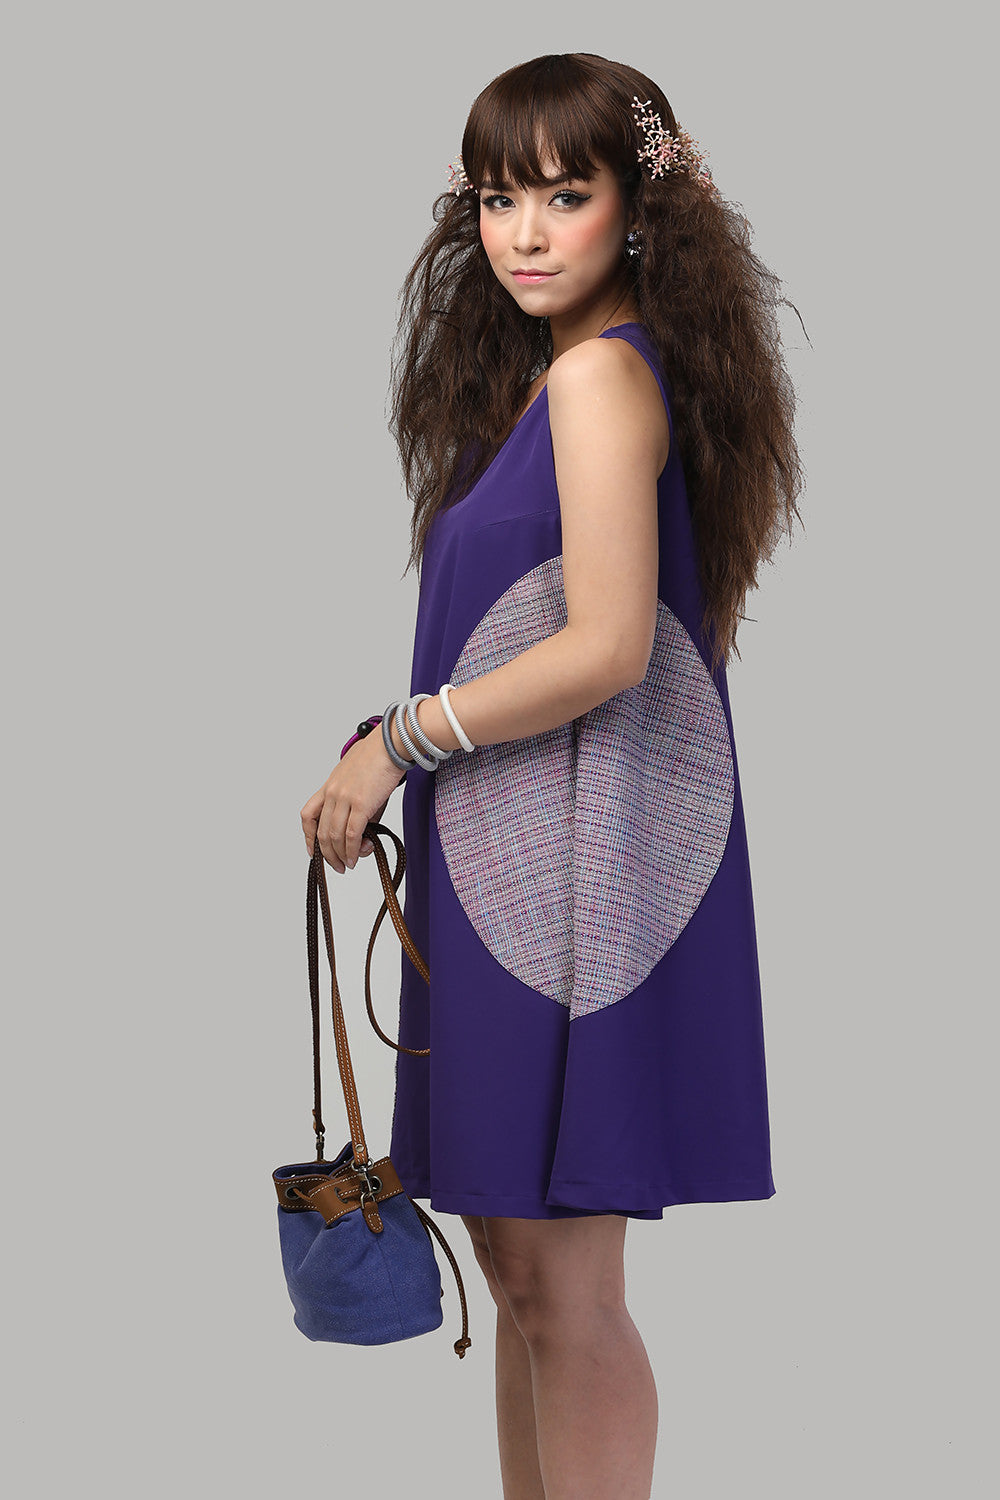 A-Line Dress with Purple Big Circles